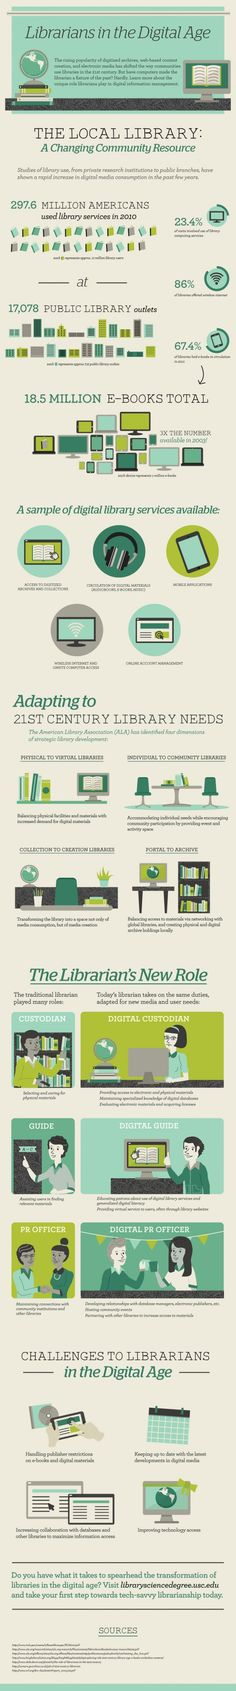 A good infographic explaining the role of Librarians in the Digital Age